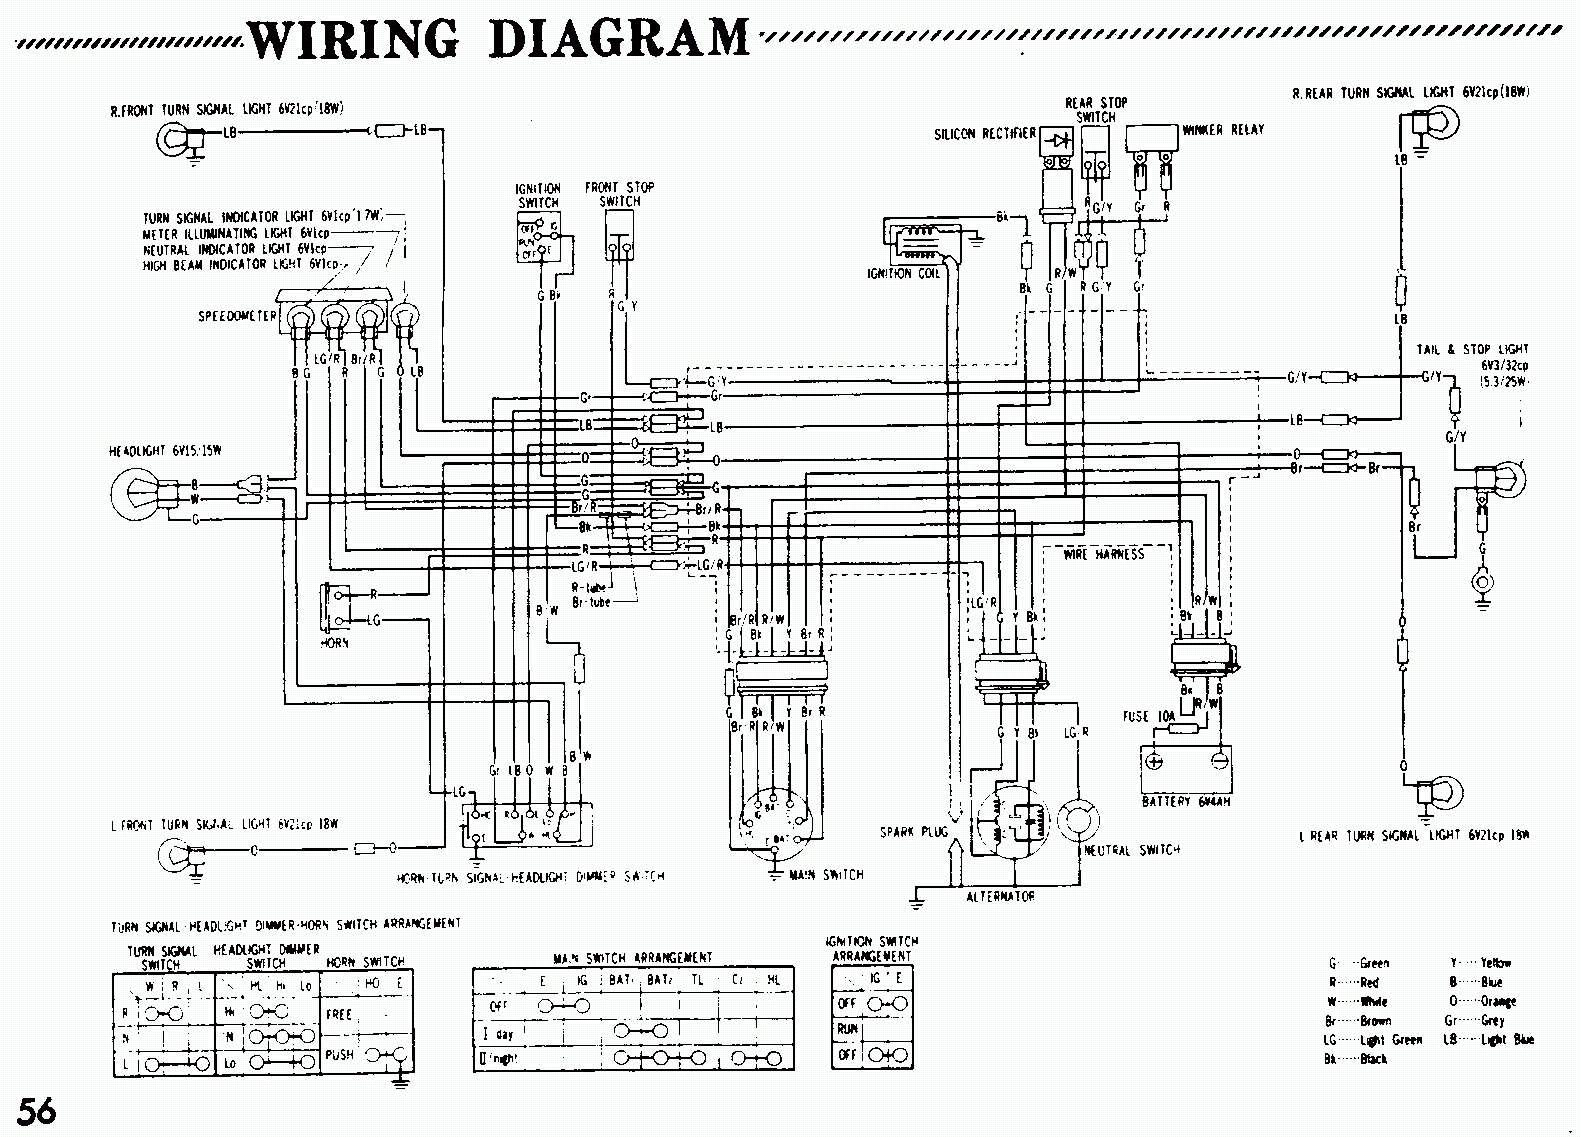 1969 to 1971 honda ct70 mini trail 70 wiring diagram wire center u2022 rh linxglobal co Elec Wiring-Diagram Basic Electrical Schematic Diagrams